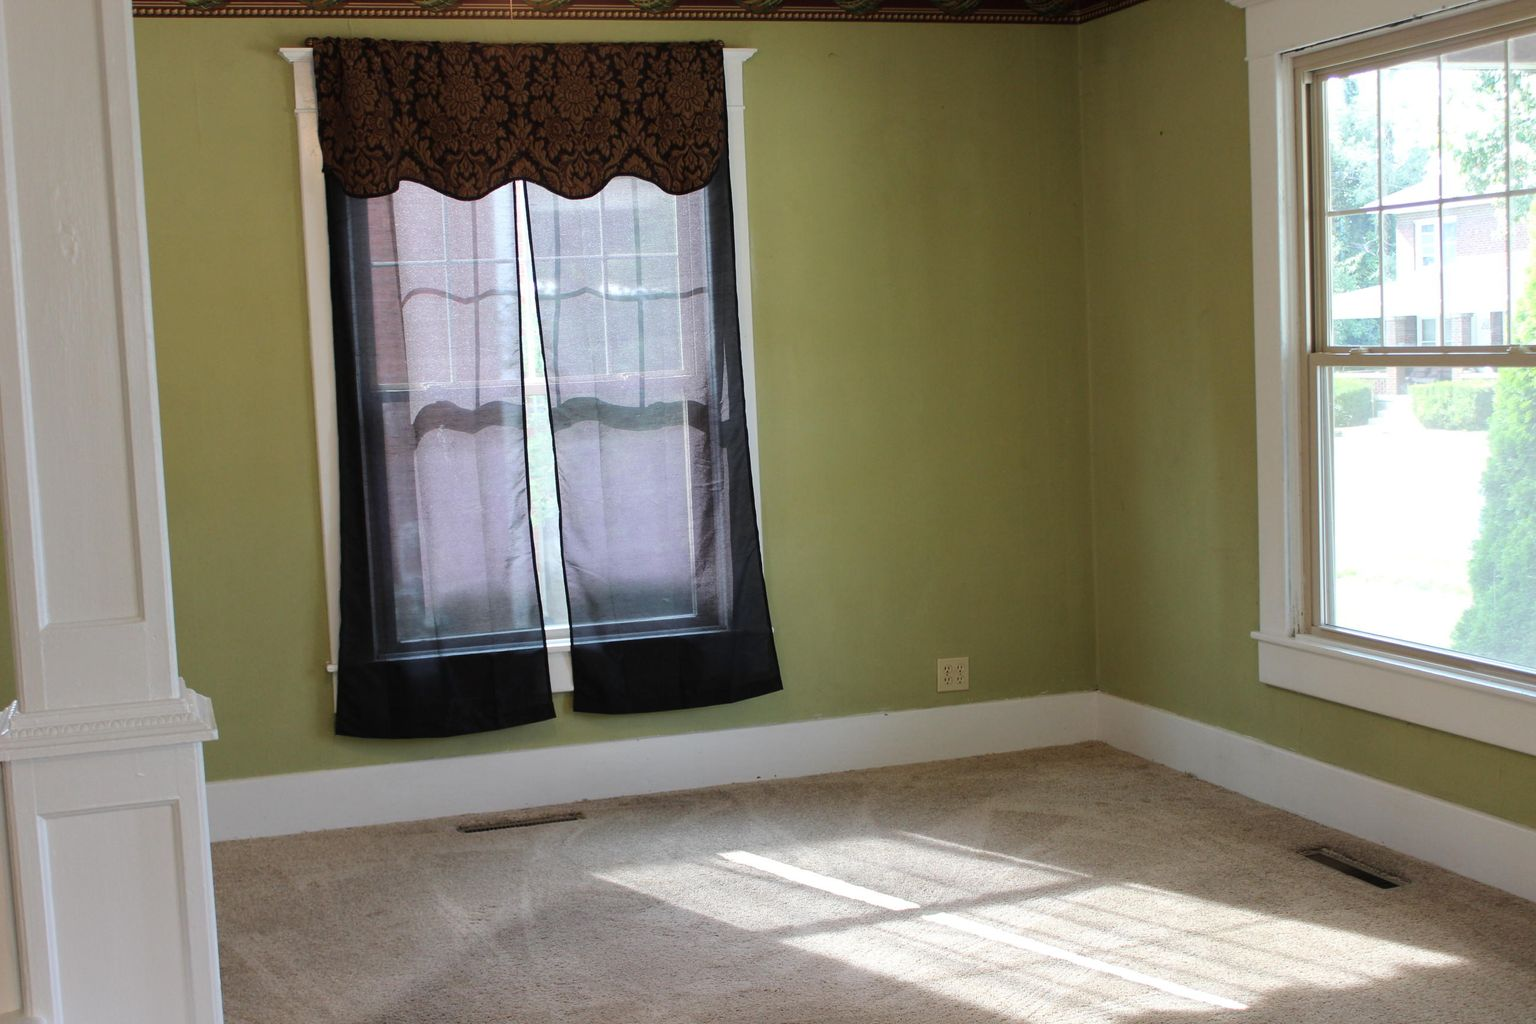 312 HIGH ST, BOONVILLE, MO 65233